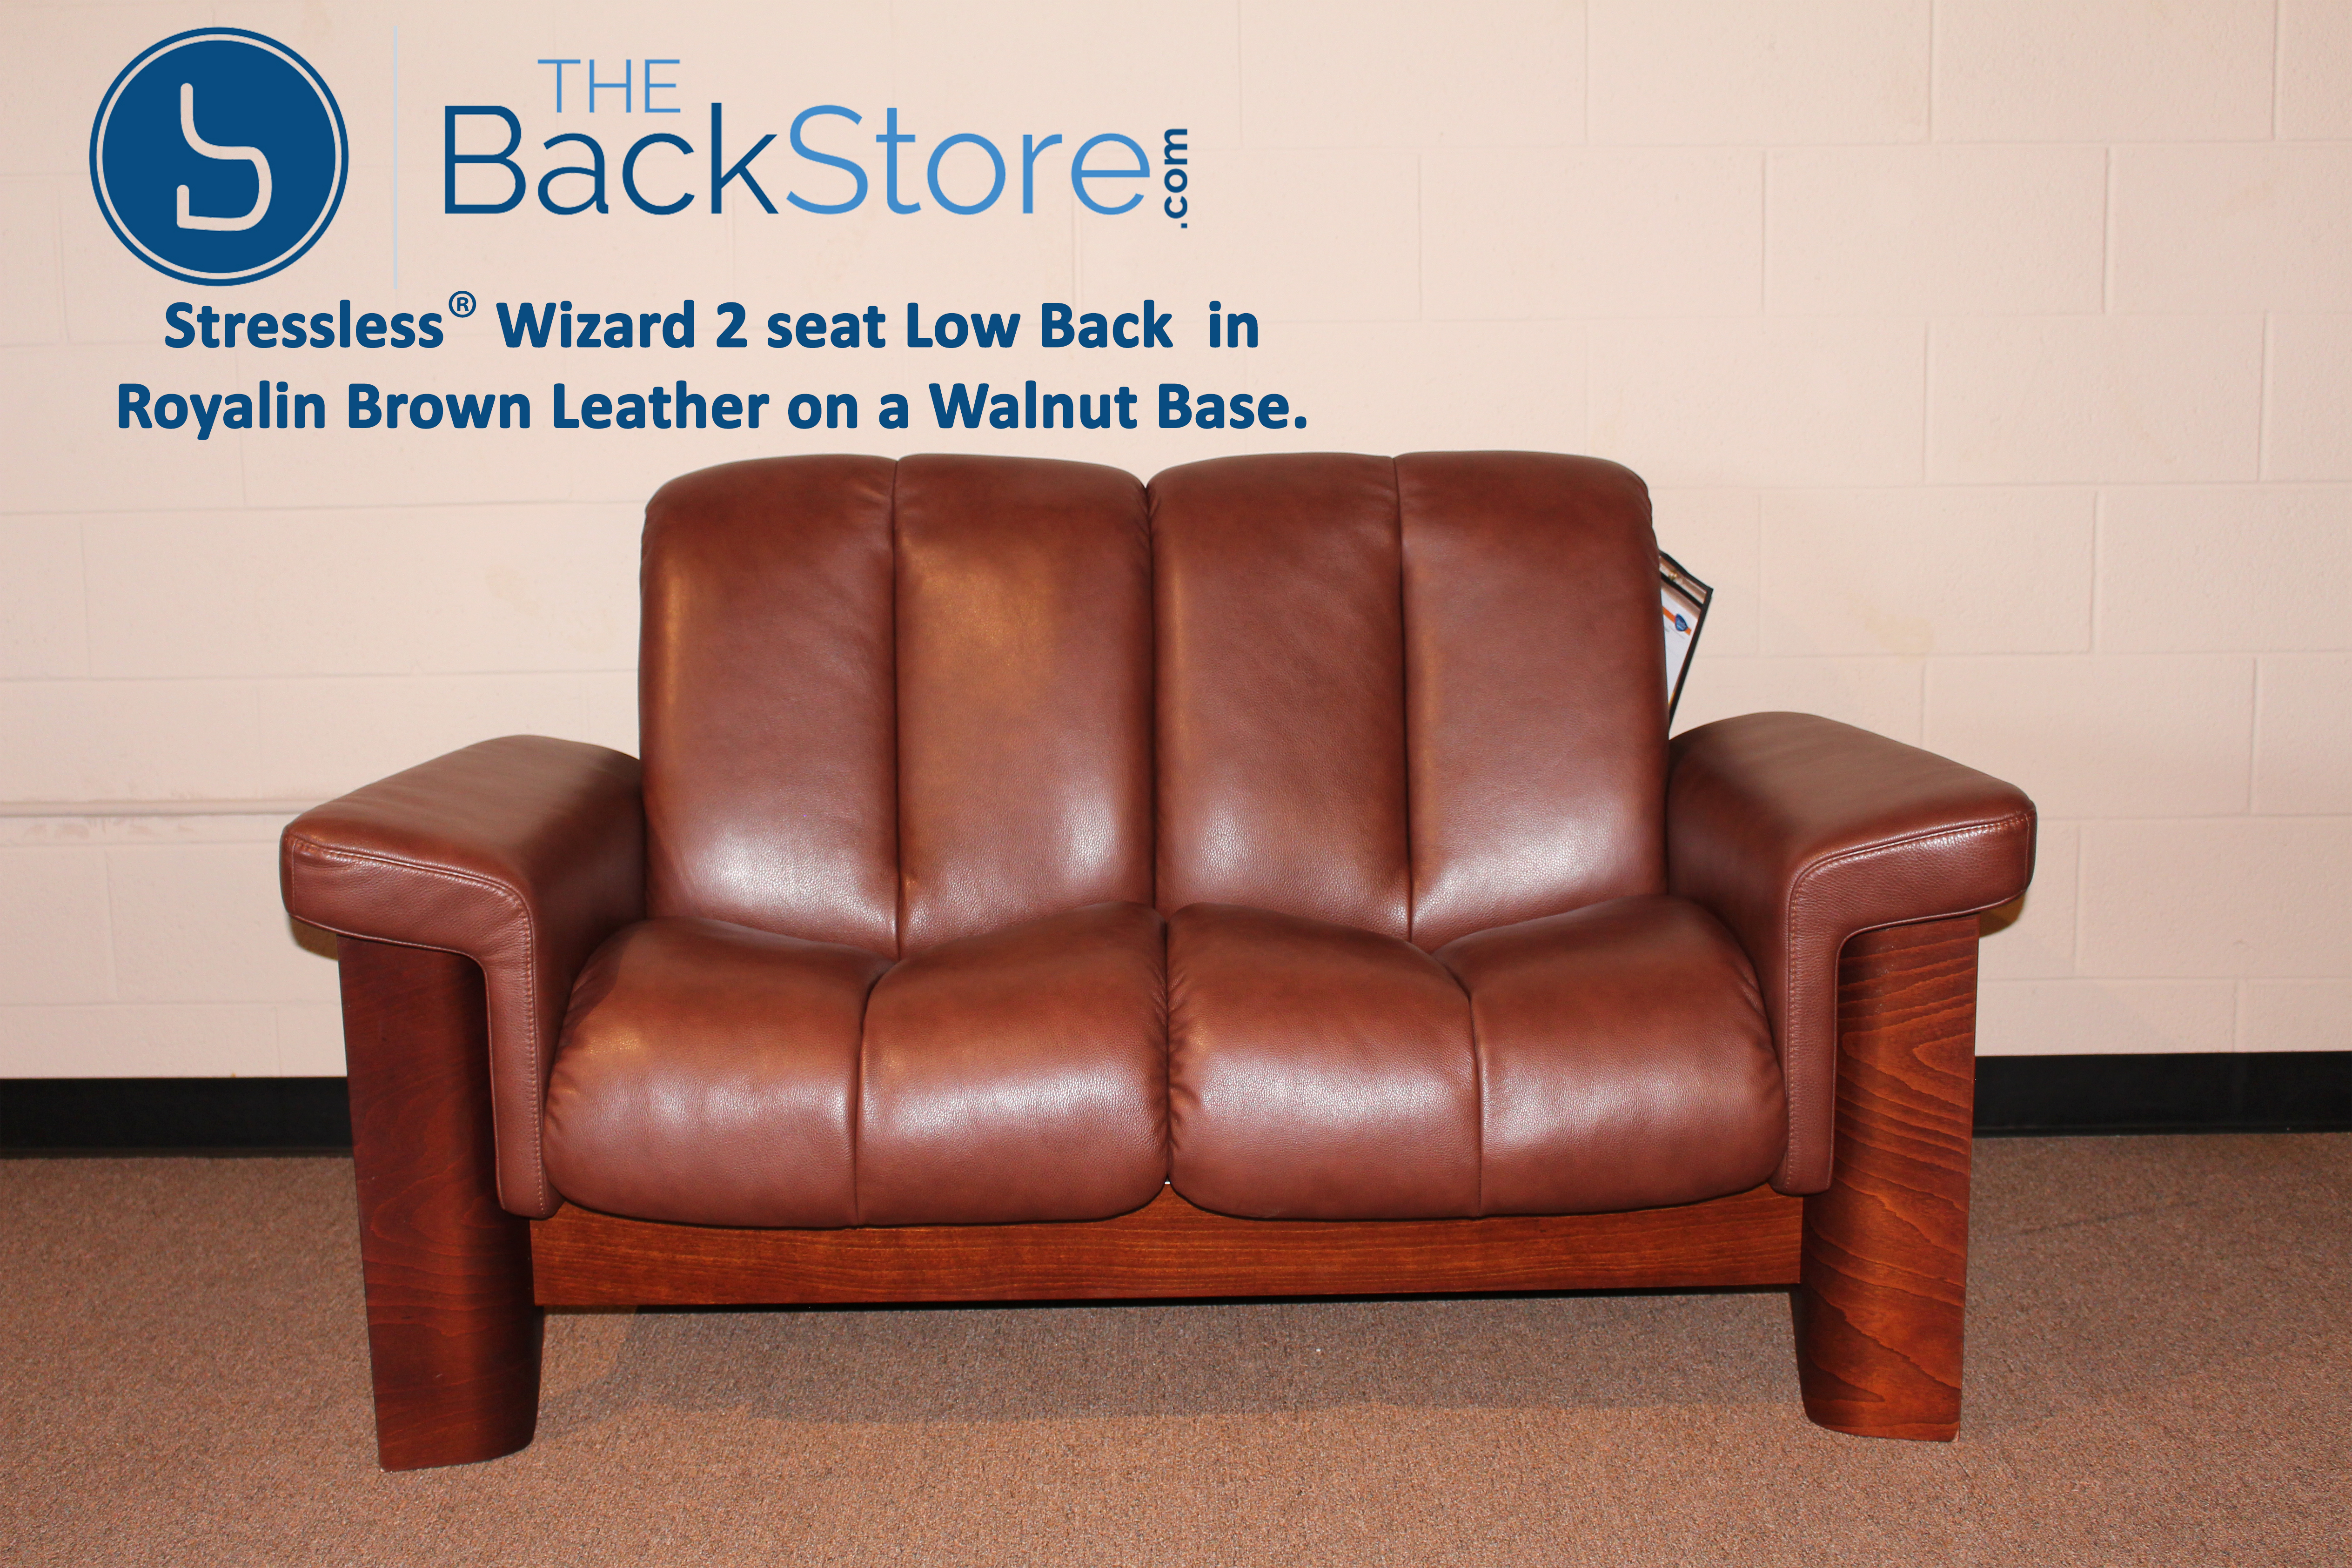 Stressless Wizard 2 Seat Low Back Loveseat Royalin Brown Color Leather by  Ekornes